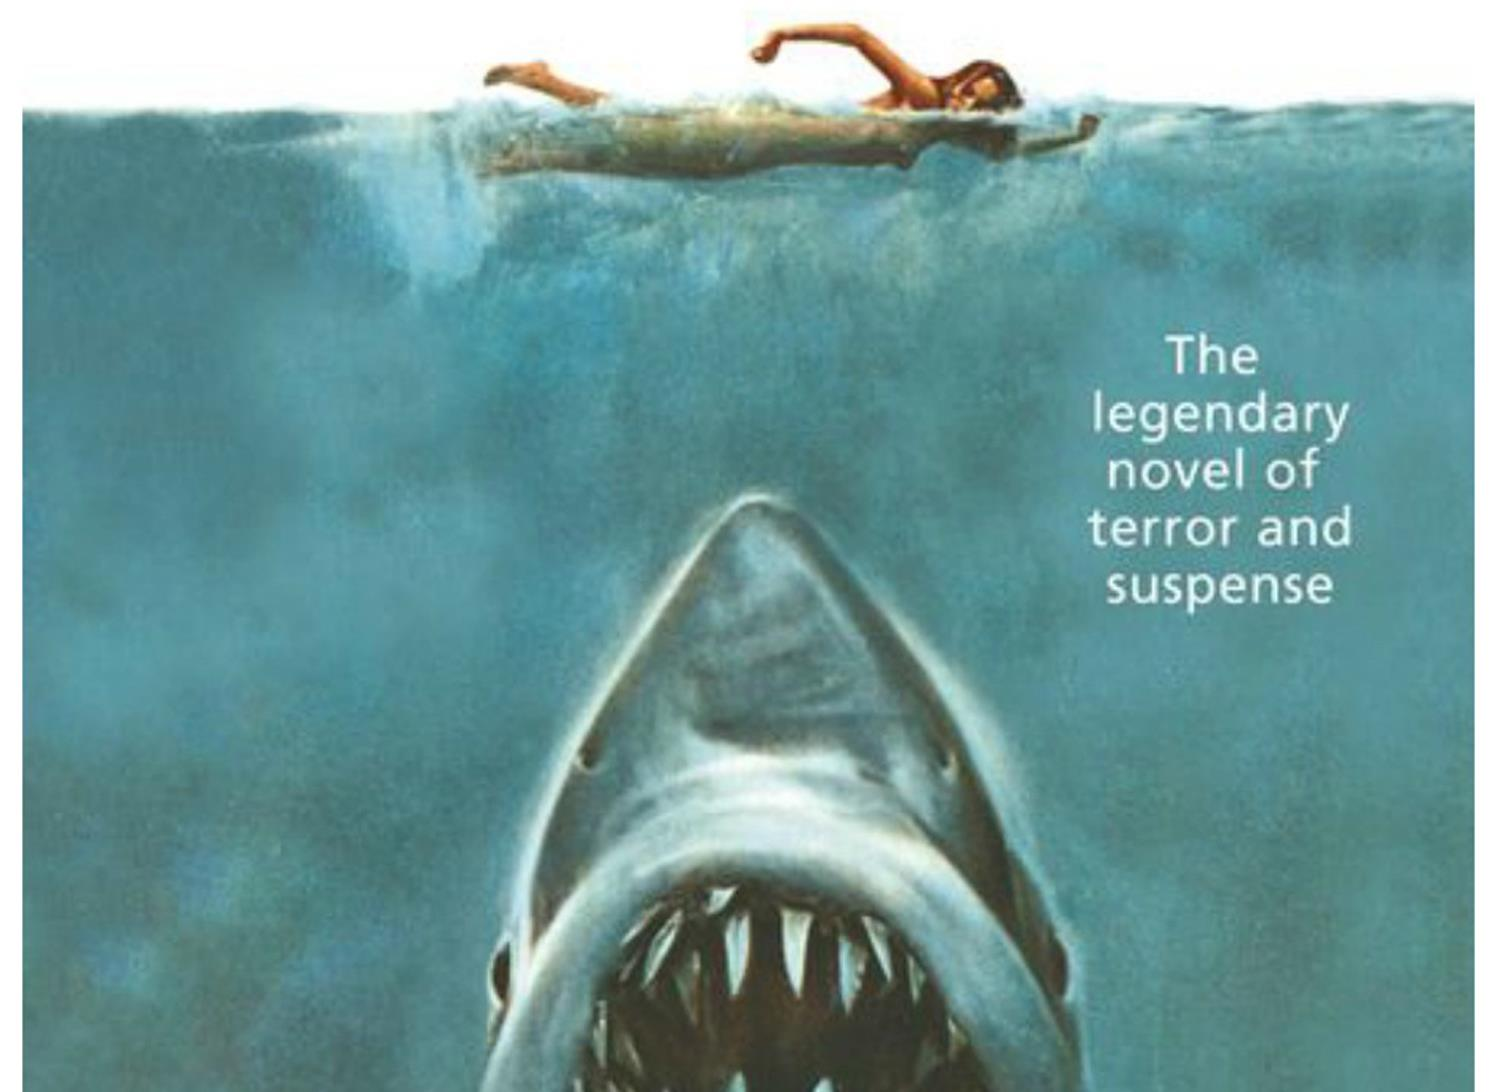 Jaws Book Cover Art : Plot holes and misconceptions dreyfuss kids reflect on